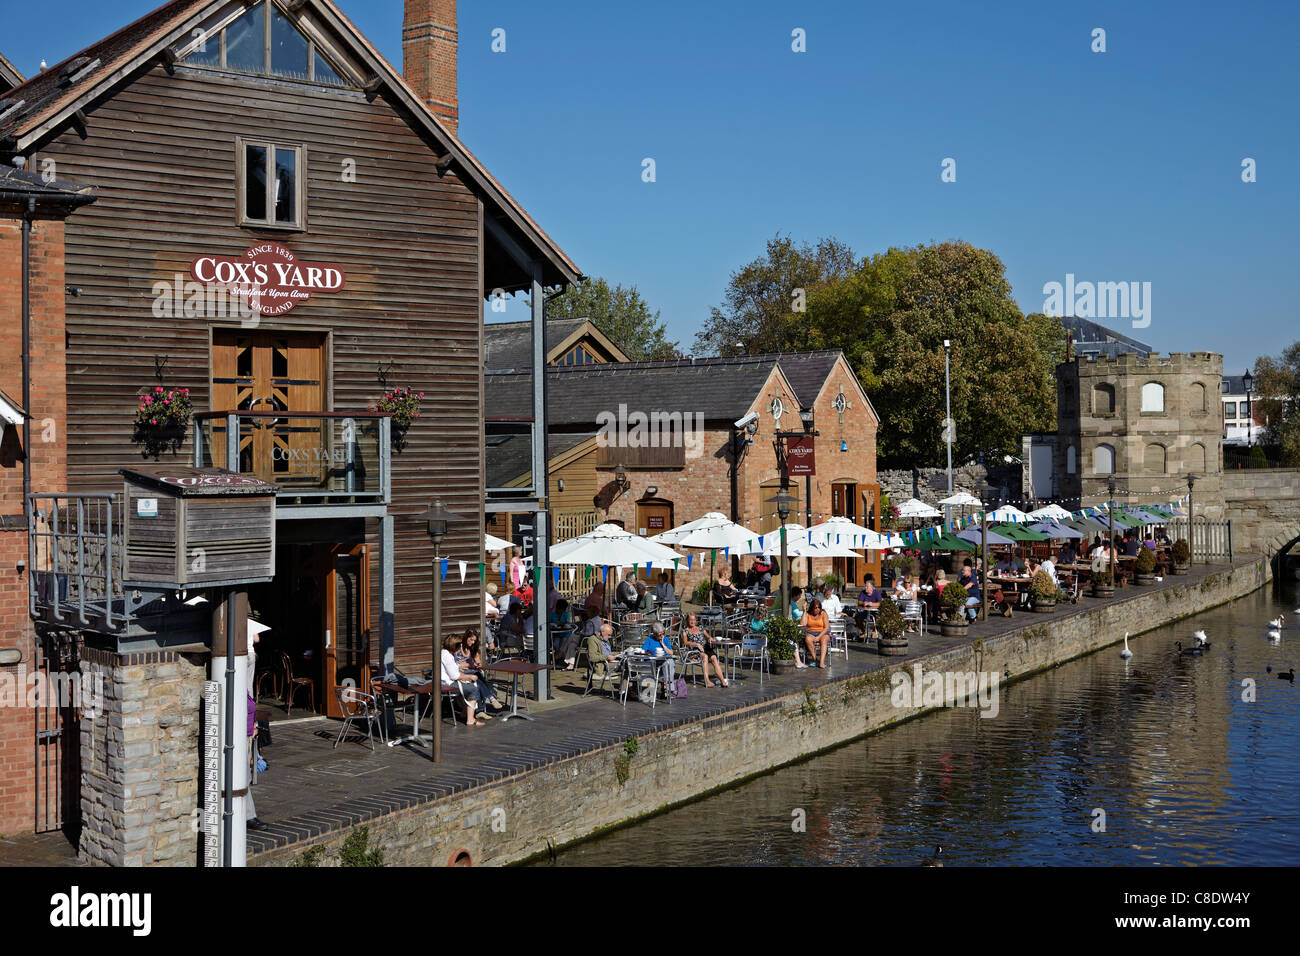 Coxs Yard Riverside Restaurant Bankside Stratford Upon Avon